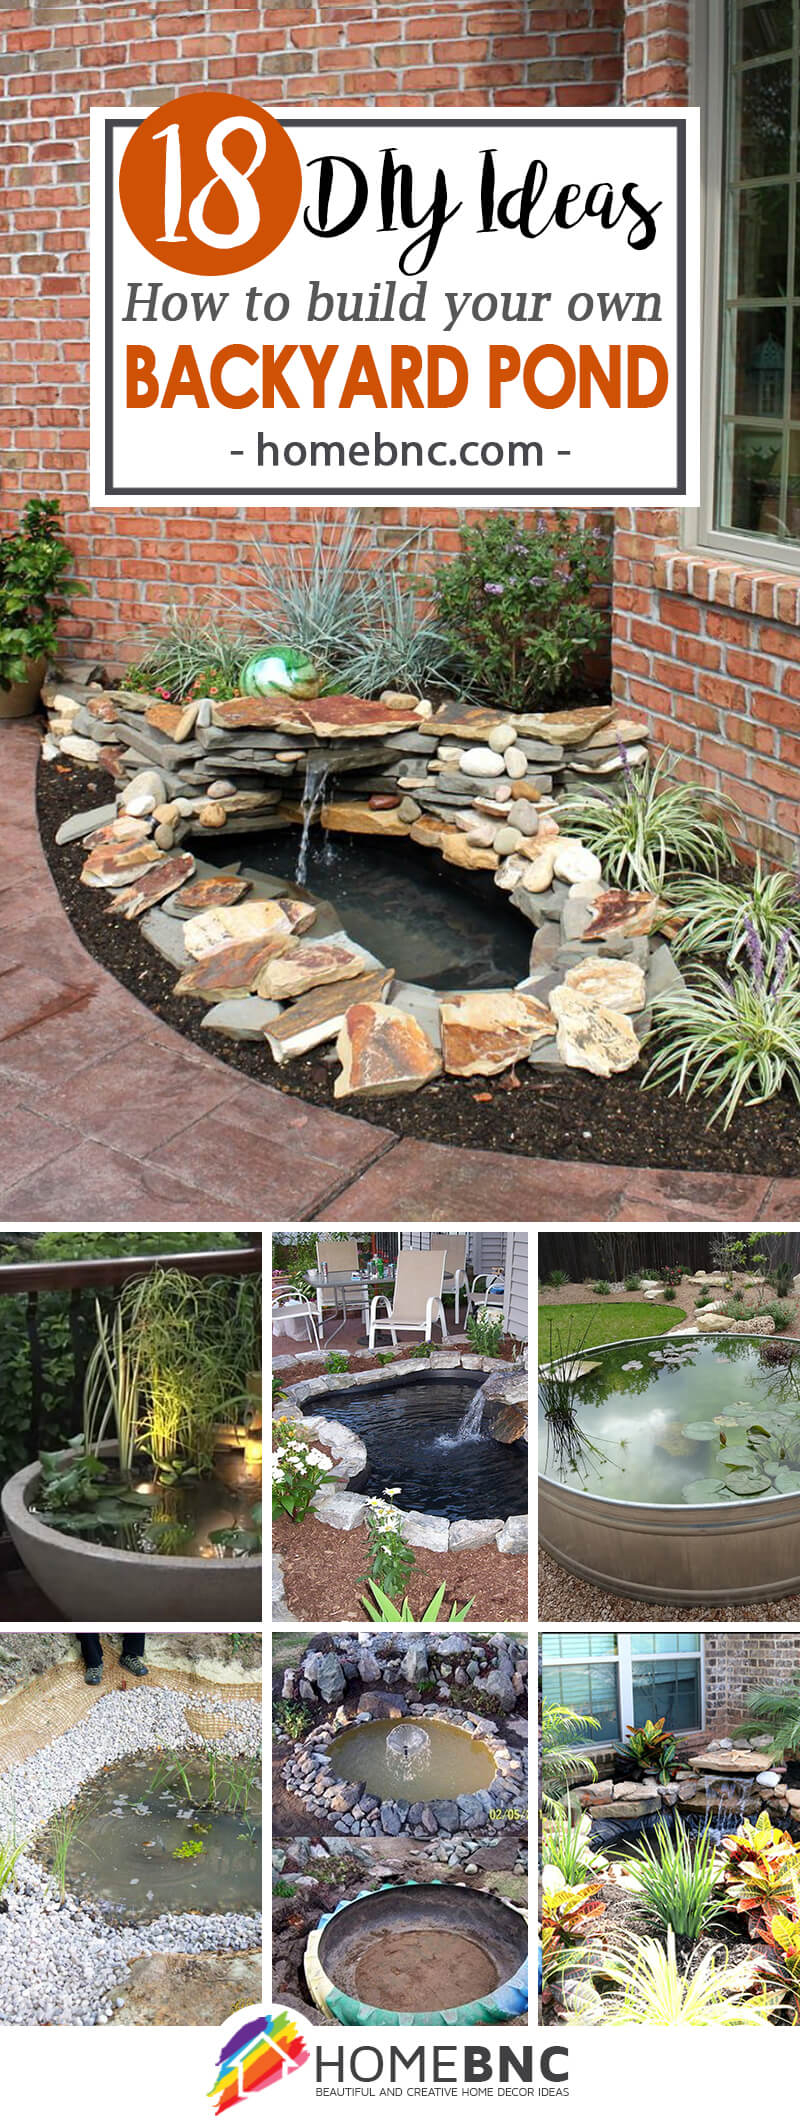 18 Best Diy Backyard Pond Ideas And Designs For 2019 for Diy Backyard Pond Ideas